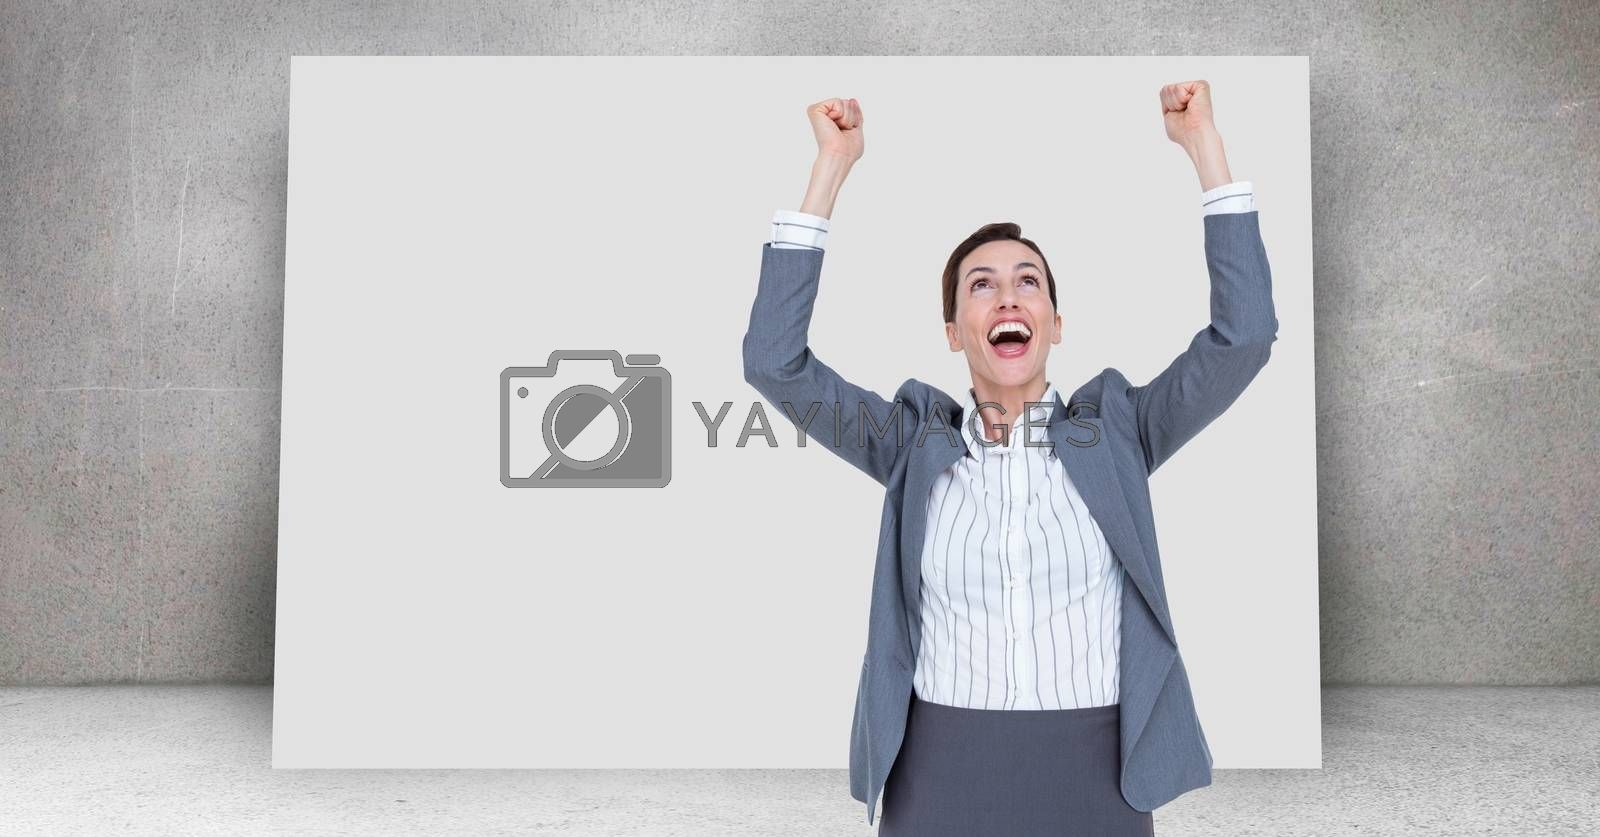 Digital composite of Winning celebration of businesswoman in front of blank board